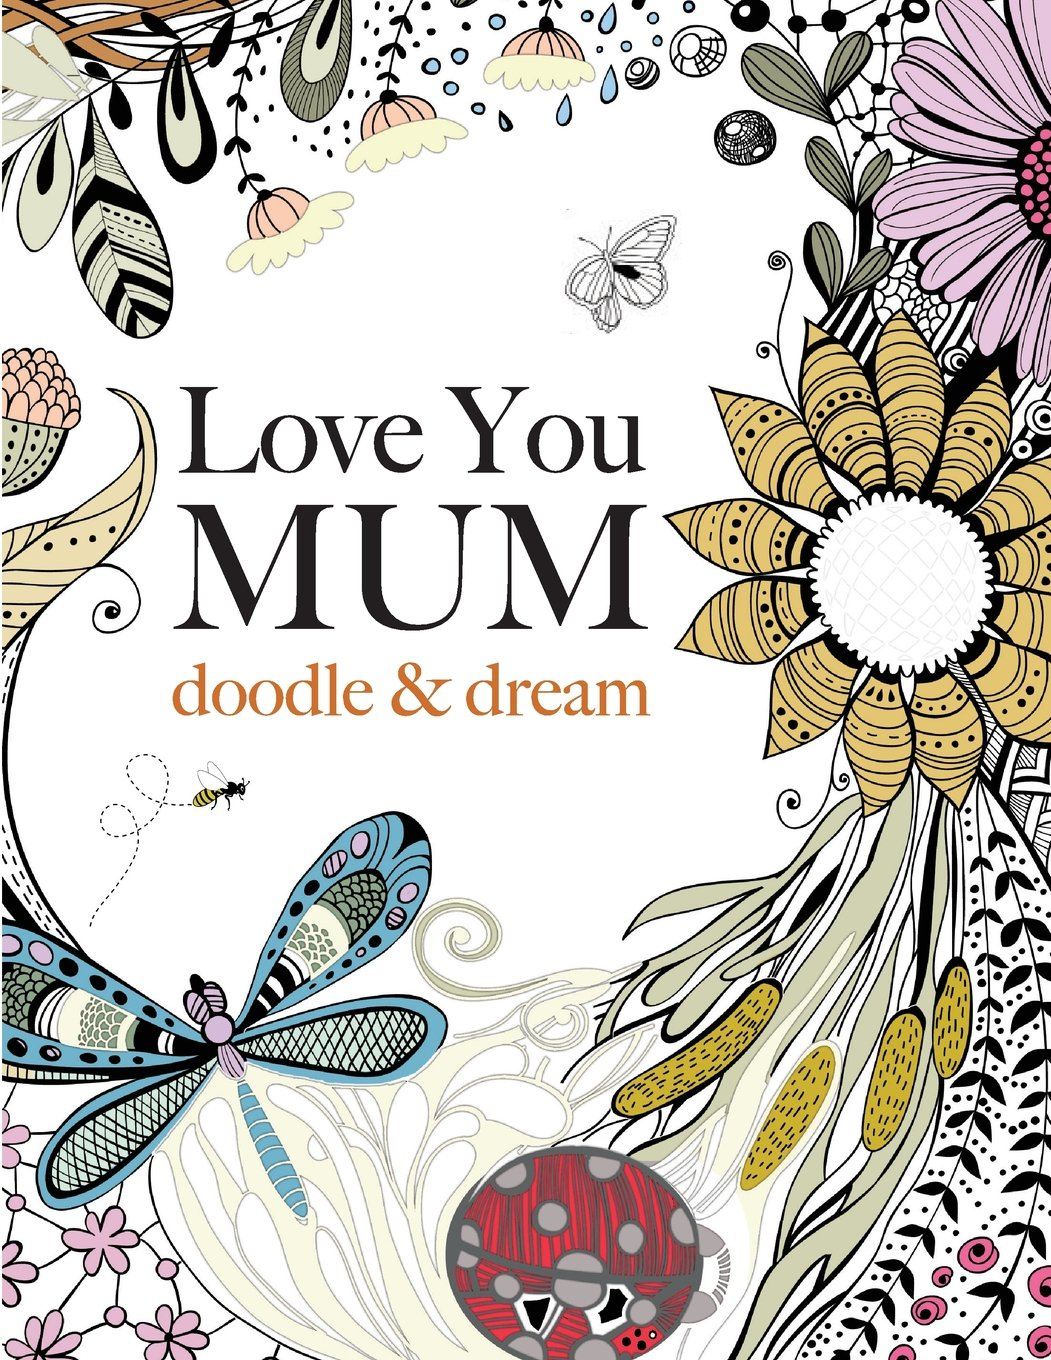 Anti stress colouring doodle and dream - Love You Mum Doodle Dream A Beautiful And Inspiring Colouring Book For Mums Everywhere Amazon Co Uk Christina Rose 9781909855793 Books